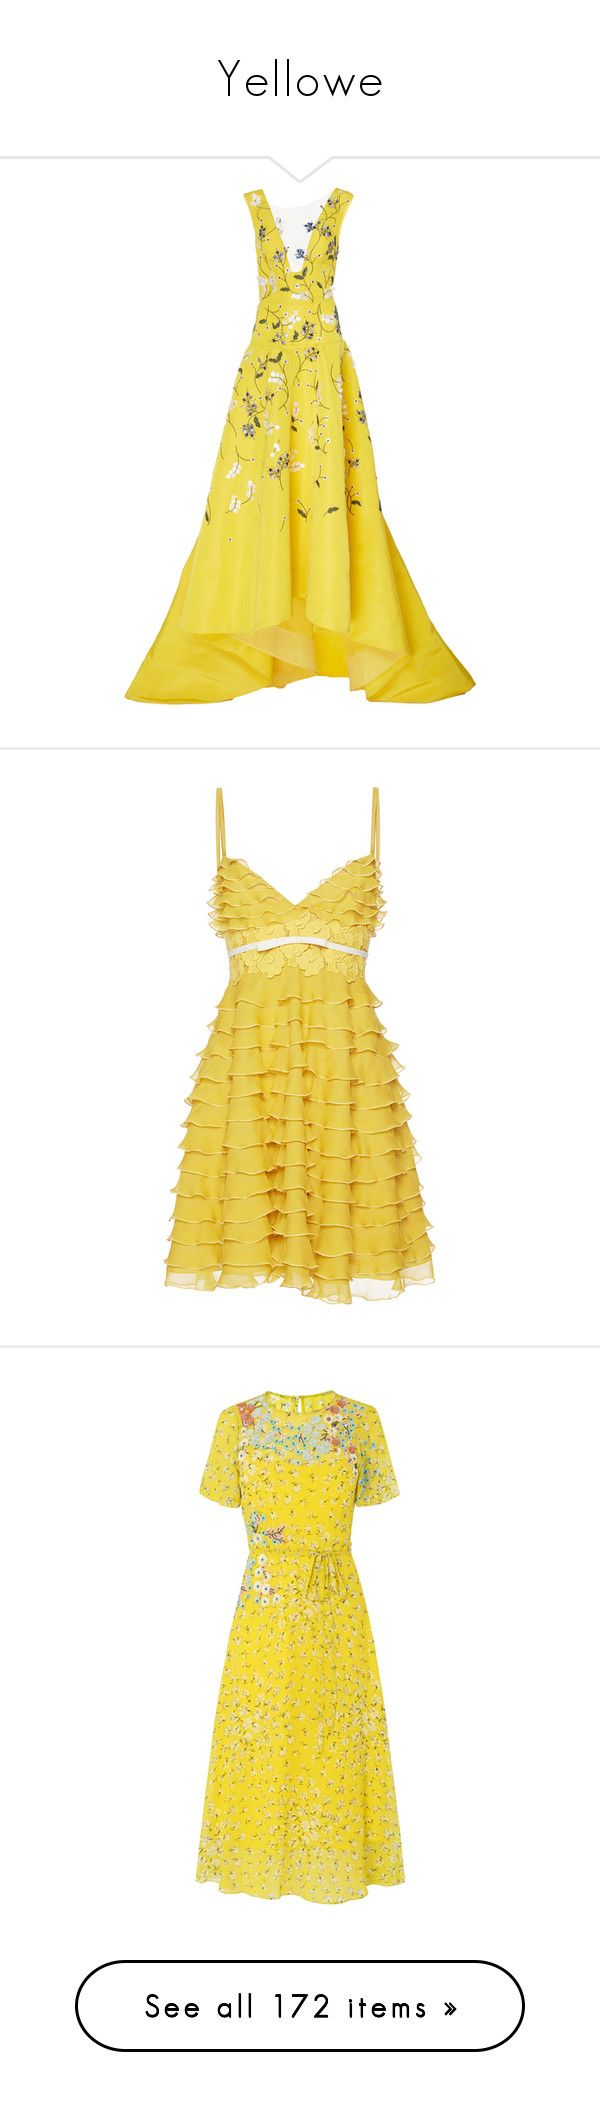 """""""Yellowe"""" by jckyleeah ❤ liked on Polyvore featuring yellow, dresses, gowns, evening gown, floral evening gown, silk dress, yellow gown, floral dresses, high low dresses and giambattista valli"""